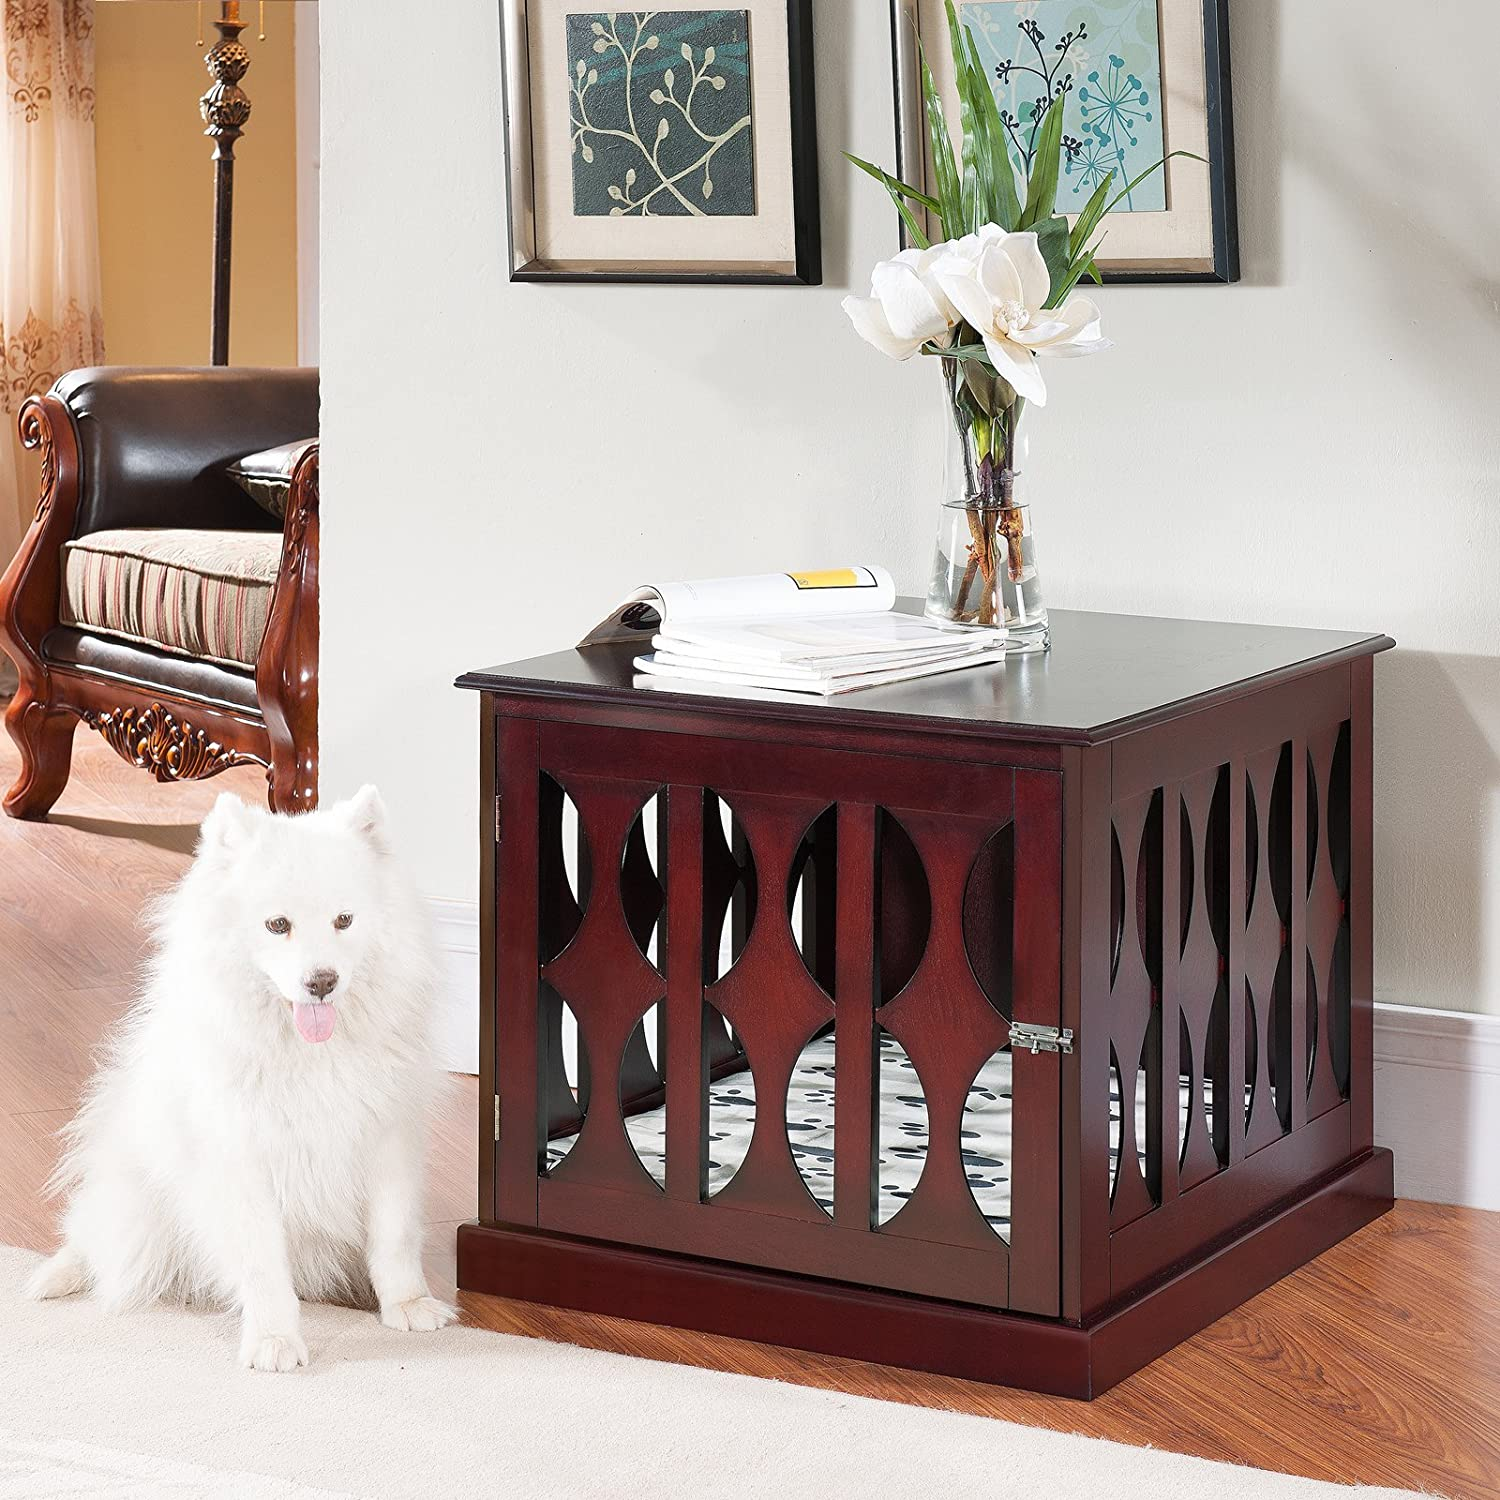 fancy dog crates furniture. fancy dog crates furniture